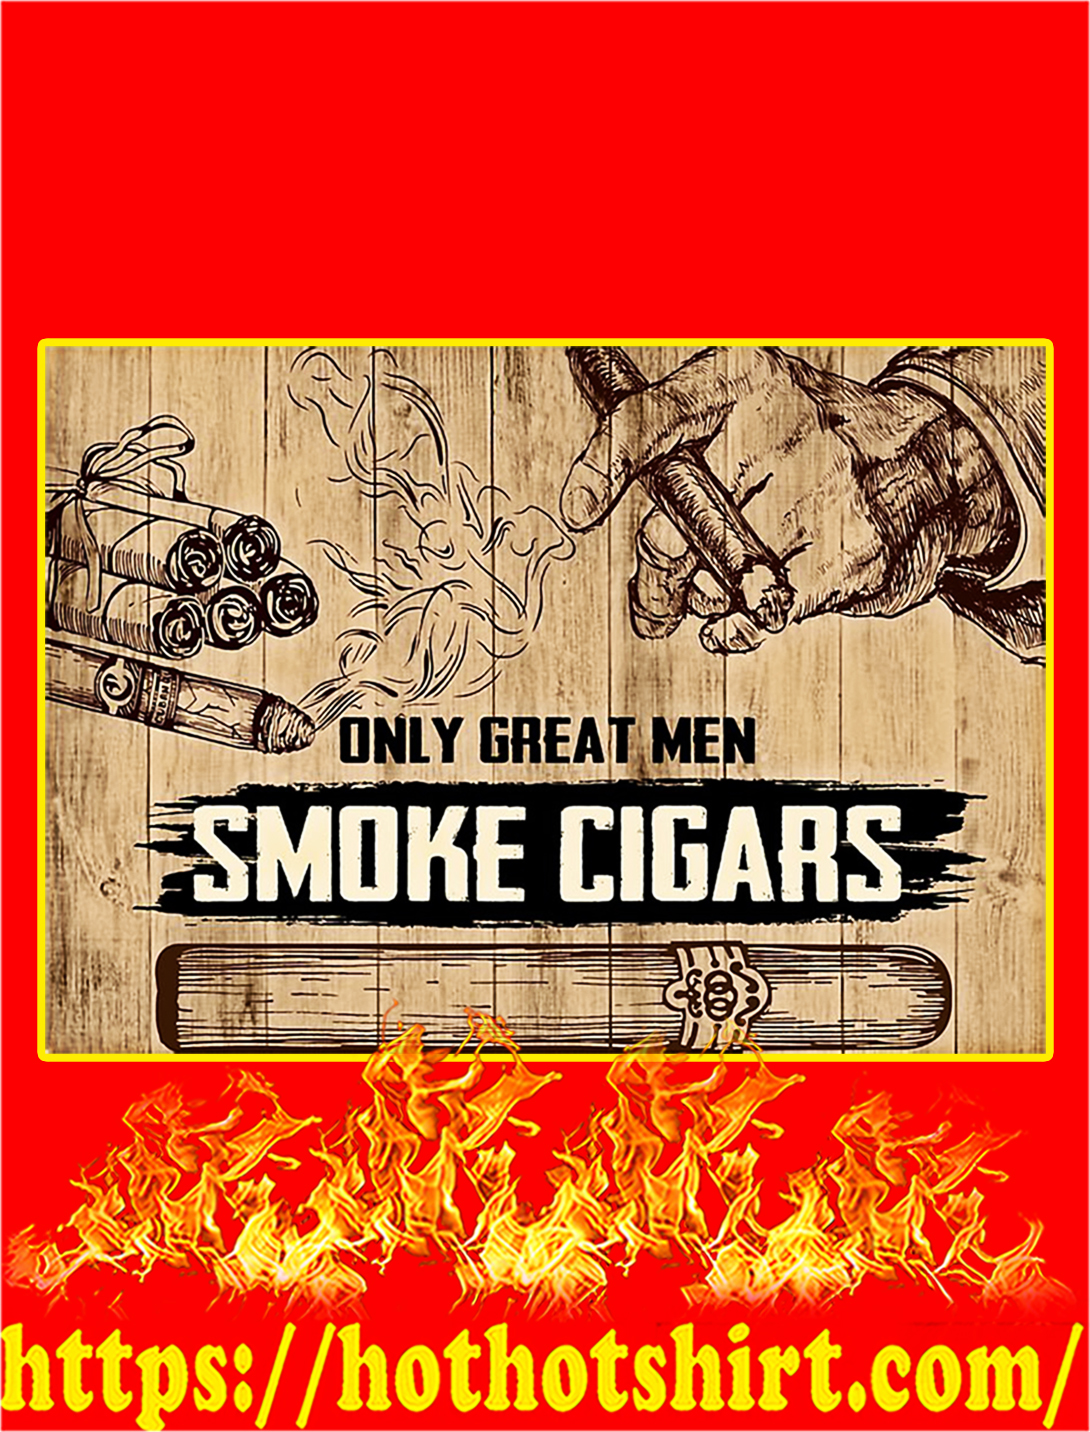 Only A Great Men Smoke Cigars Poster - A1